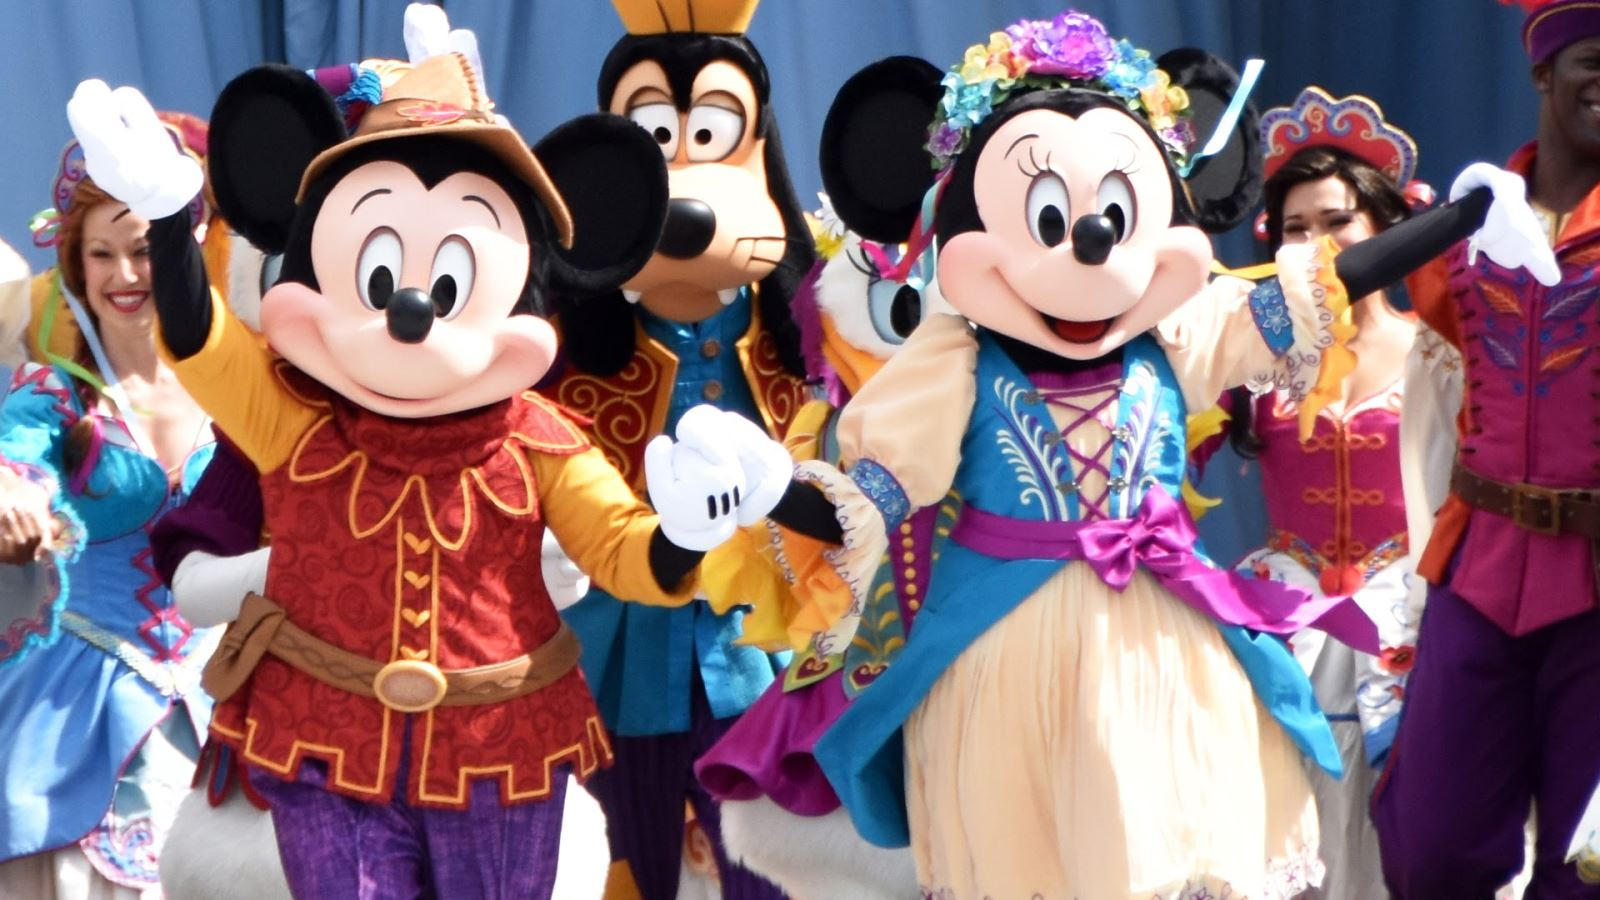 Mickey and friends at Disney's Magic Kingdom